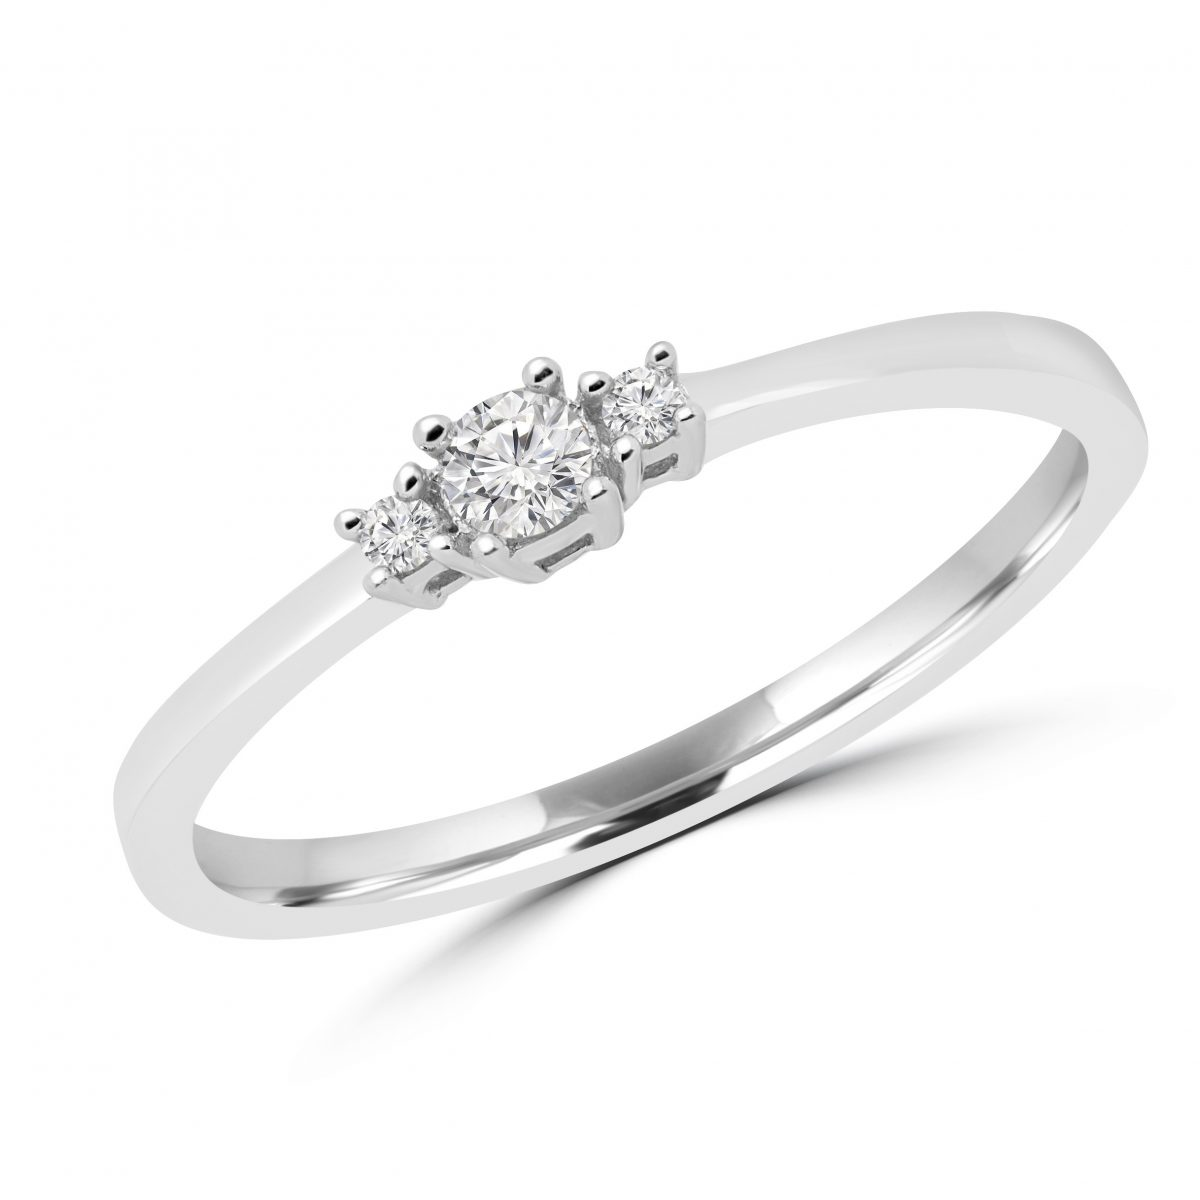 ring engagement promise diamondrings etiquette rings wiki